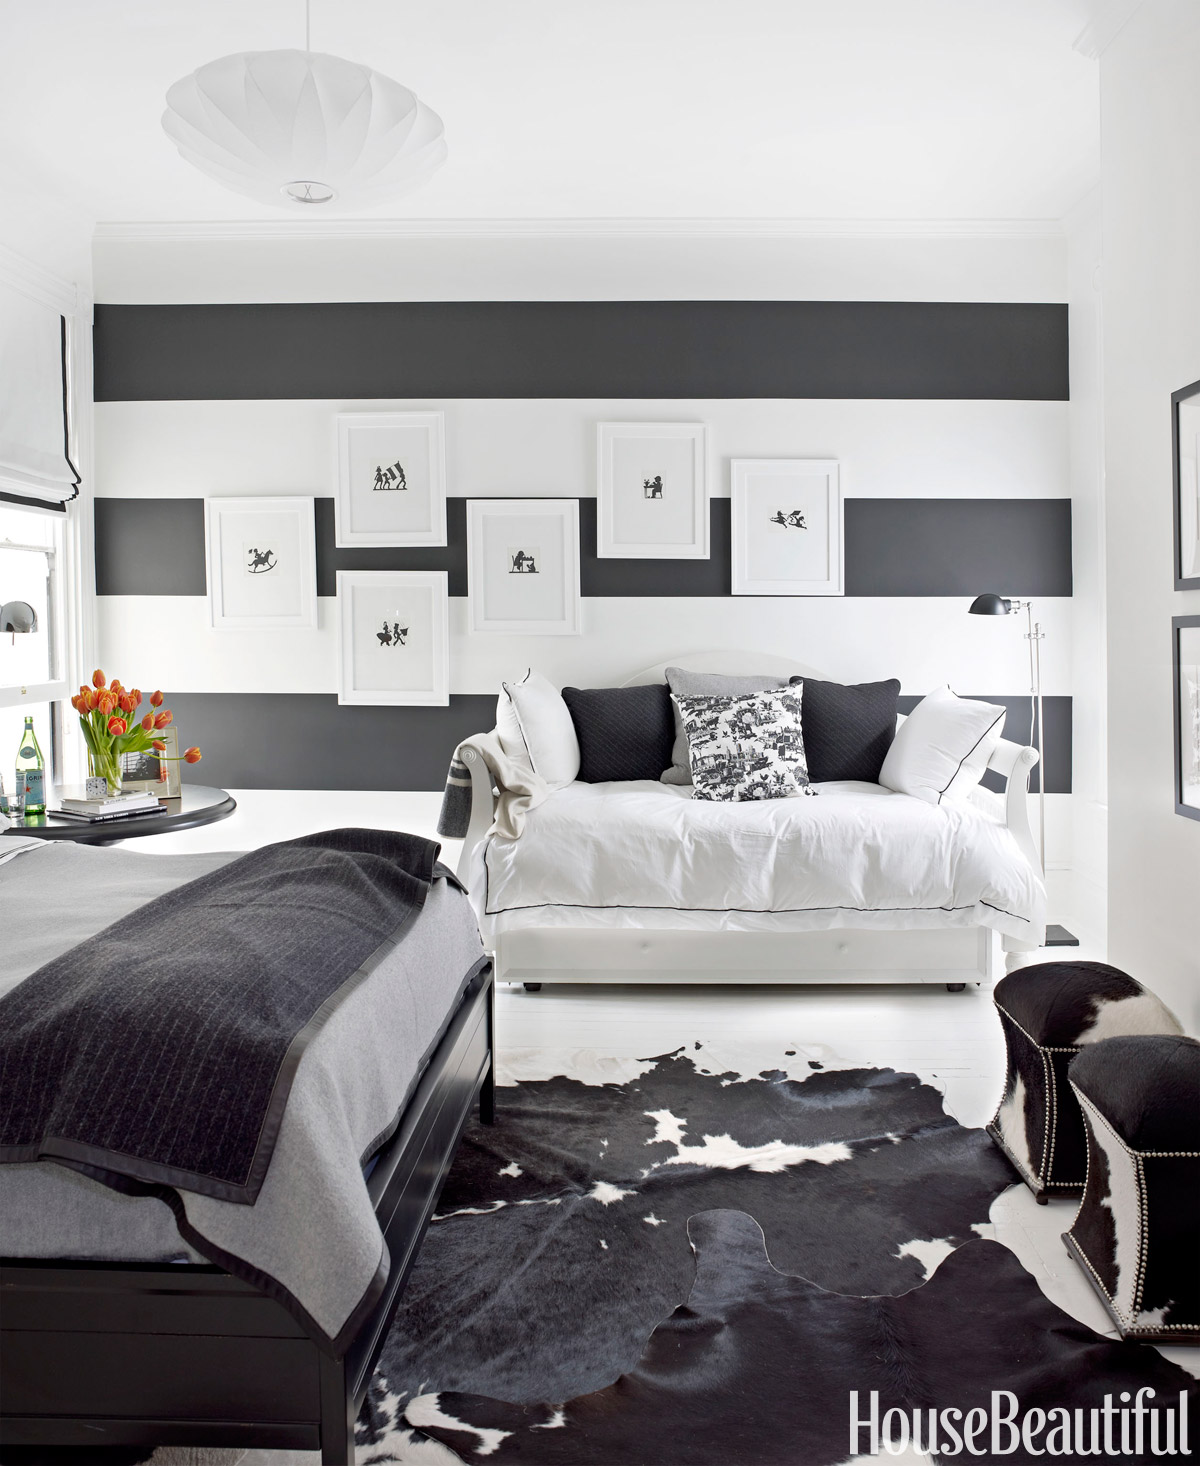 black and white designer rooms black and white decorating ideas - Black And White Bedroom Decorating Ideas